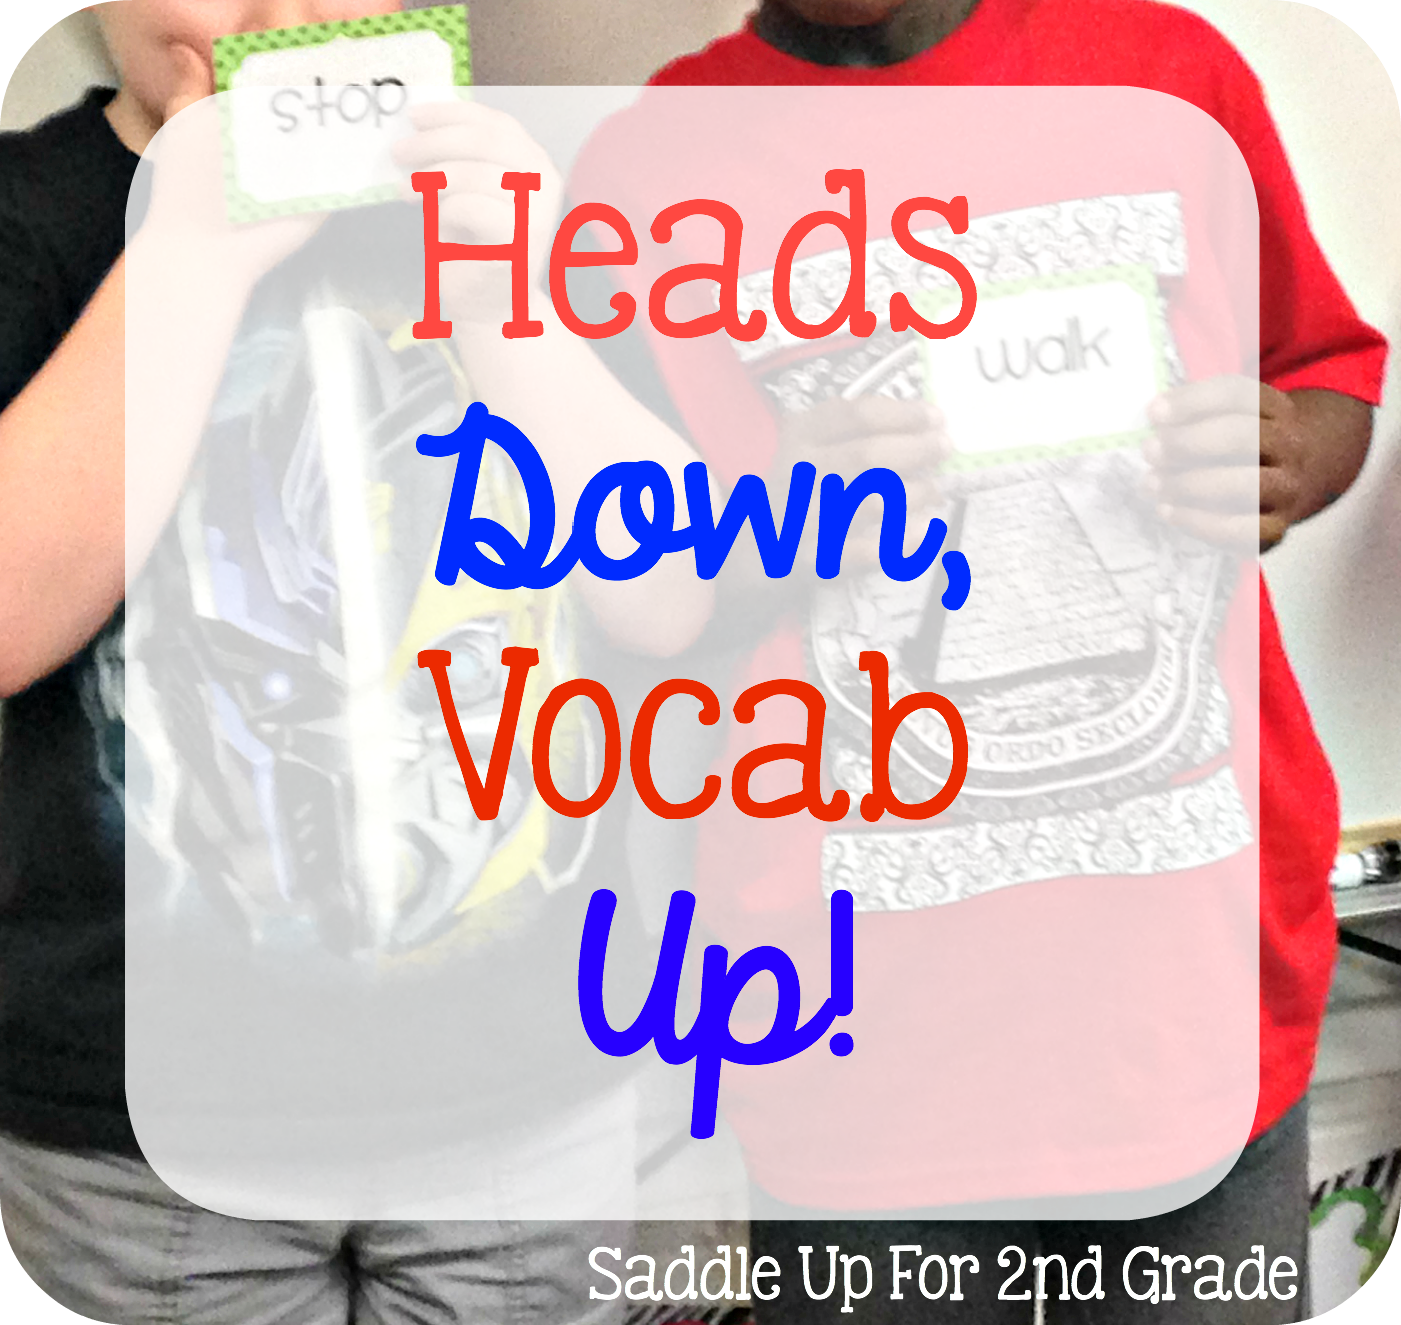 4 Games to Increase Vocabulary Success - Saddle up for Second Grade